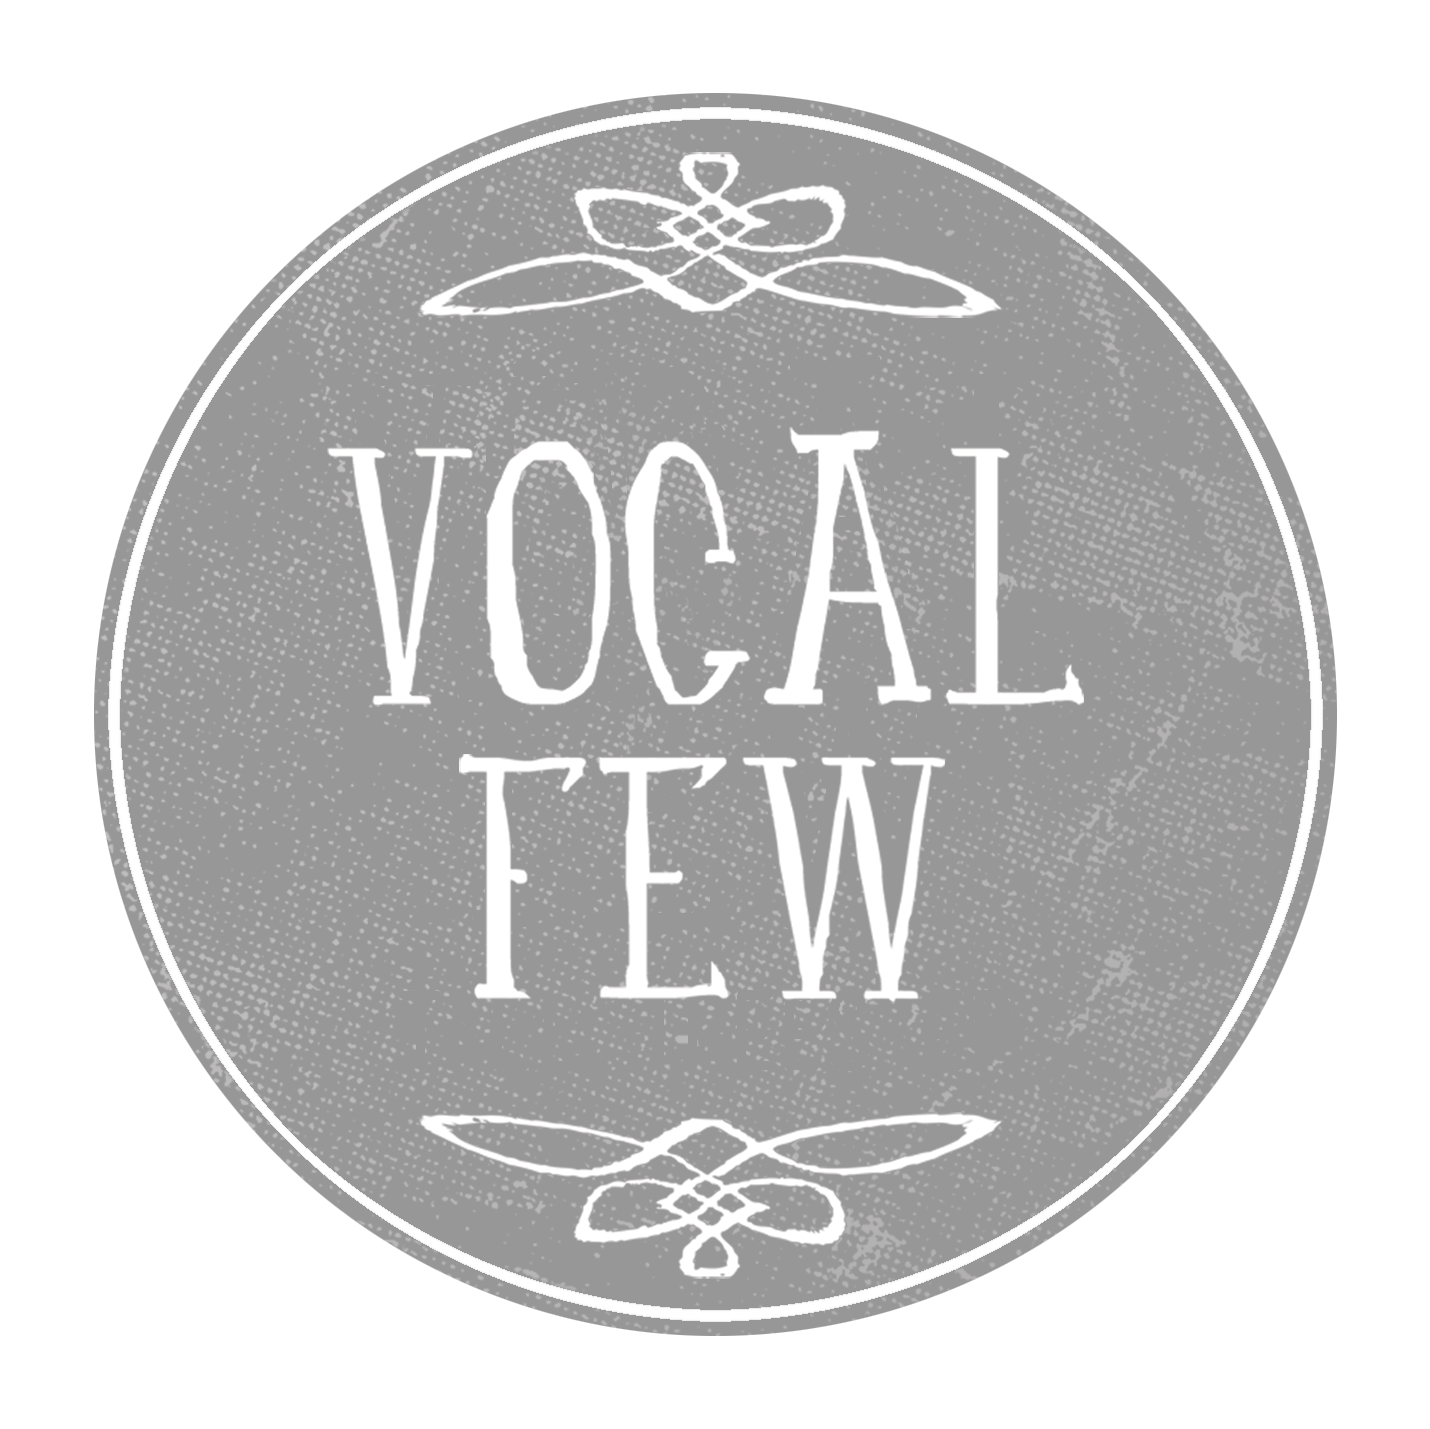 Vocal Few